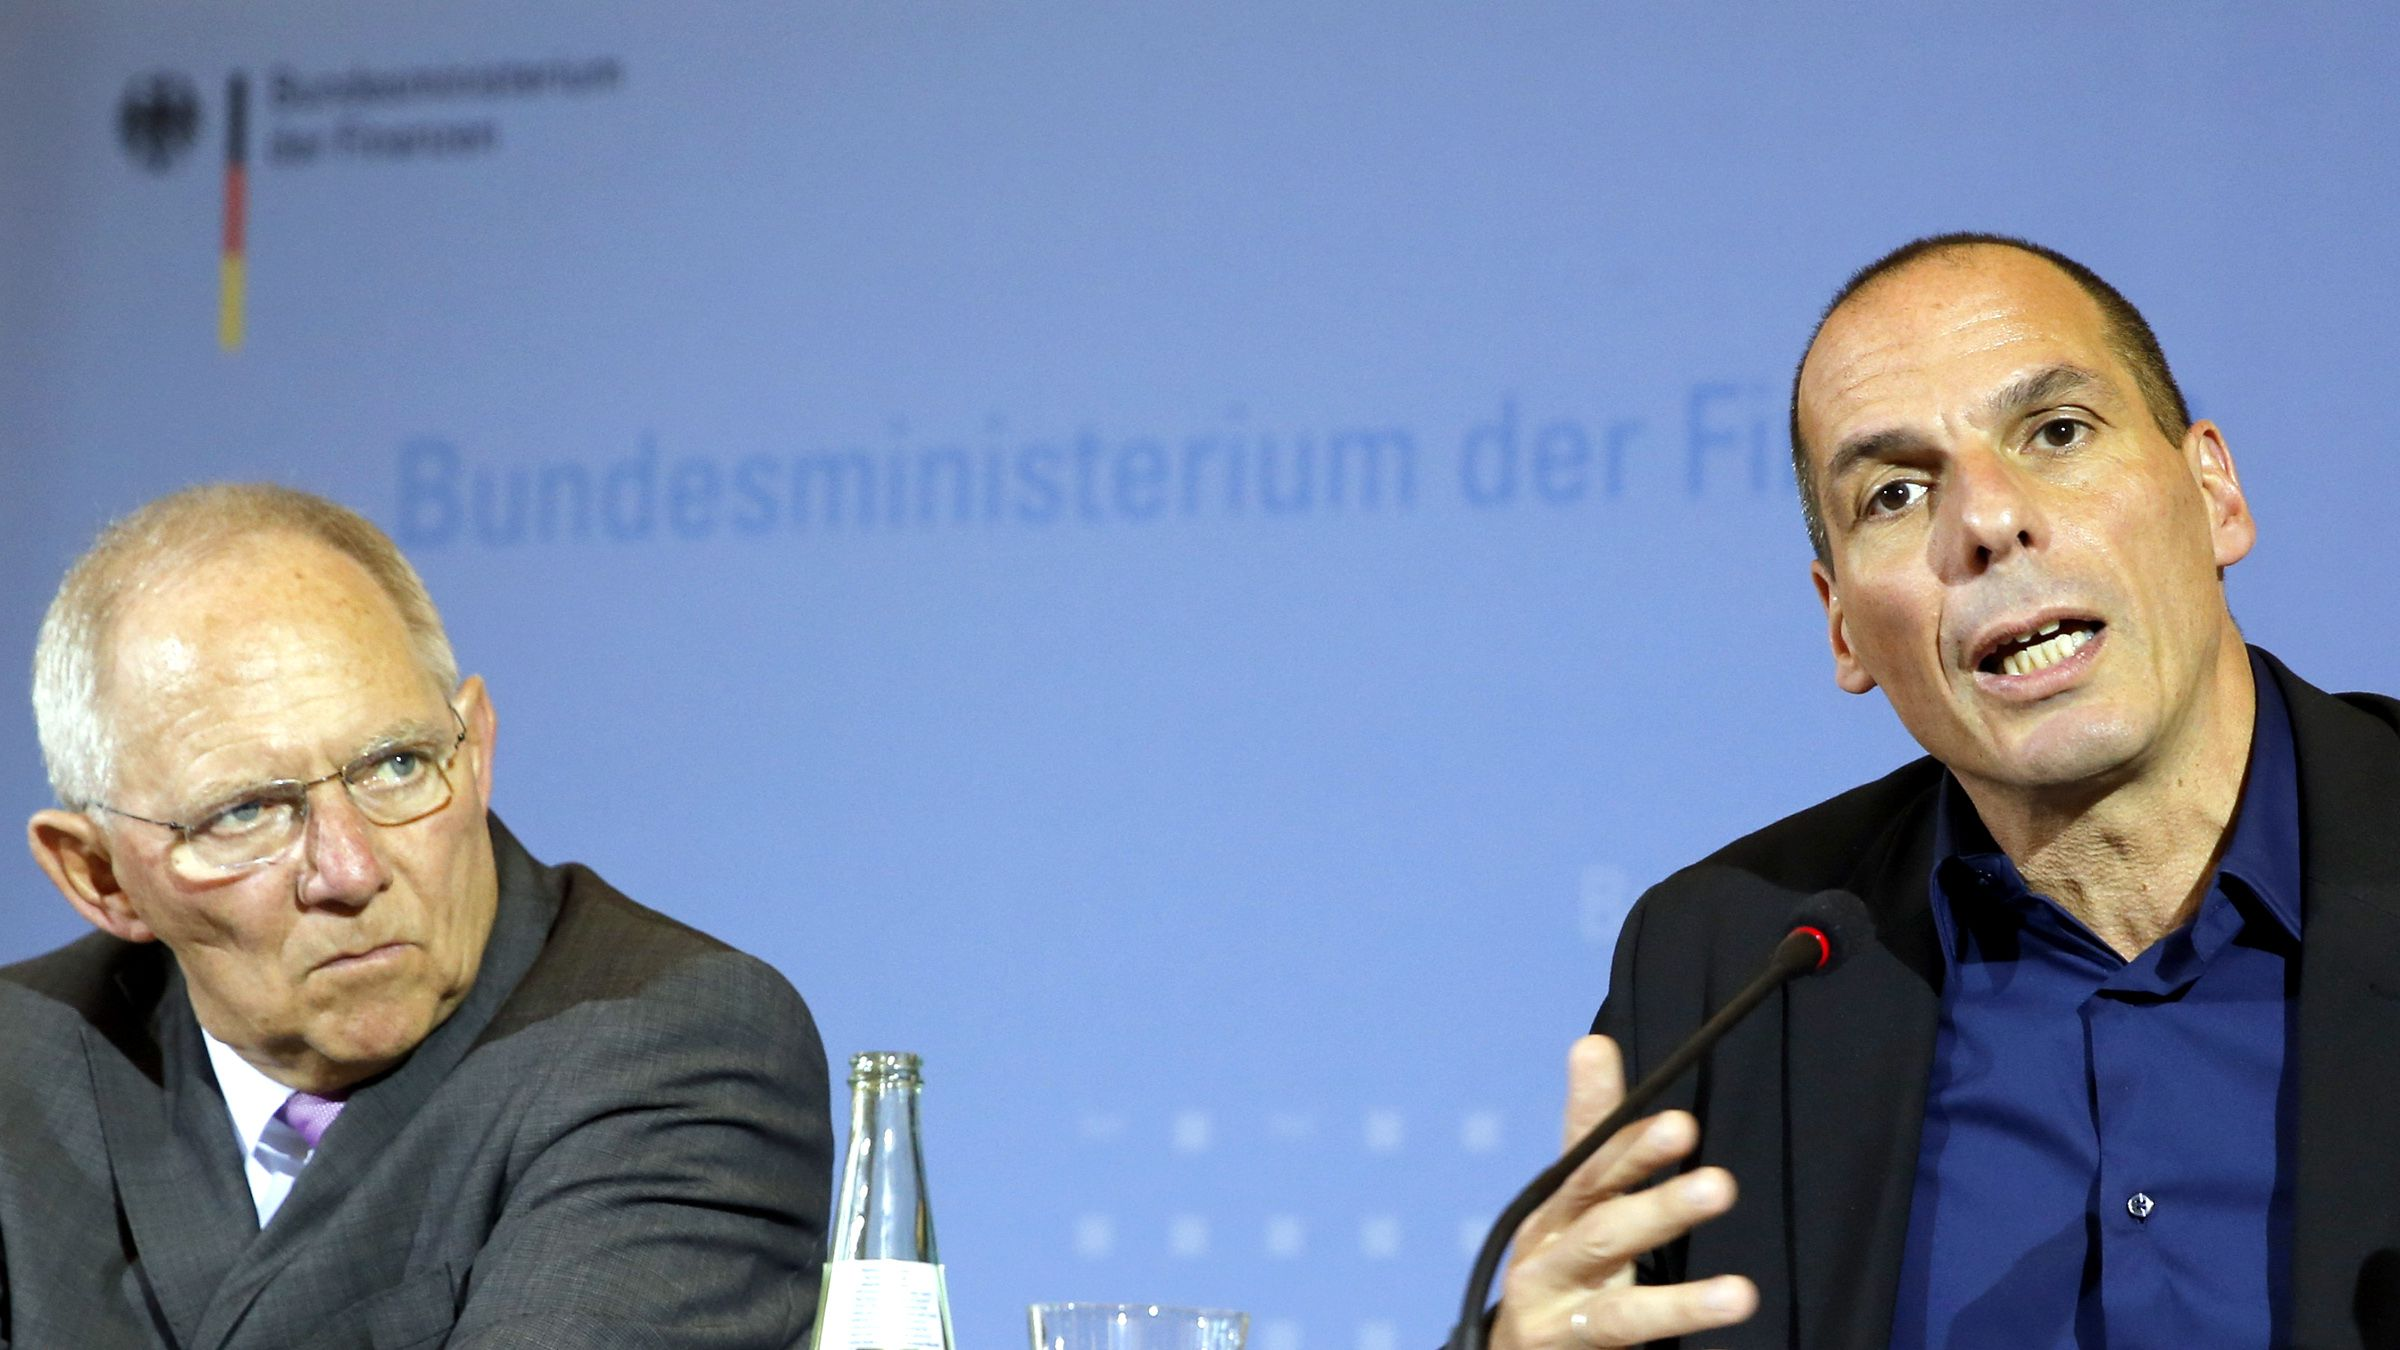 """Greek Finance Minister Yanis Varoufakis and German Finance Minister Wolfgang Schaeuble (L) address a news conference following talks at the finance ministry in Berlin February 5, 2015. The Greek and German finance ministers could """"not even agree to disagree"""" at their meeting on Thursday about the new government in Athens' plans to renegotiate Greece's debt and halt austerity measures prescribed by Berlin, the Greek minister said."""